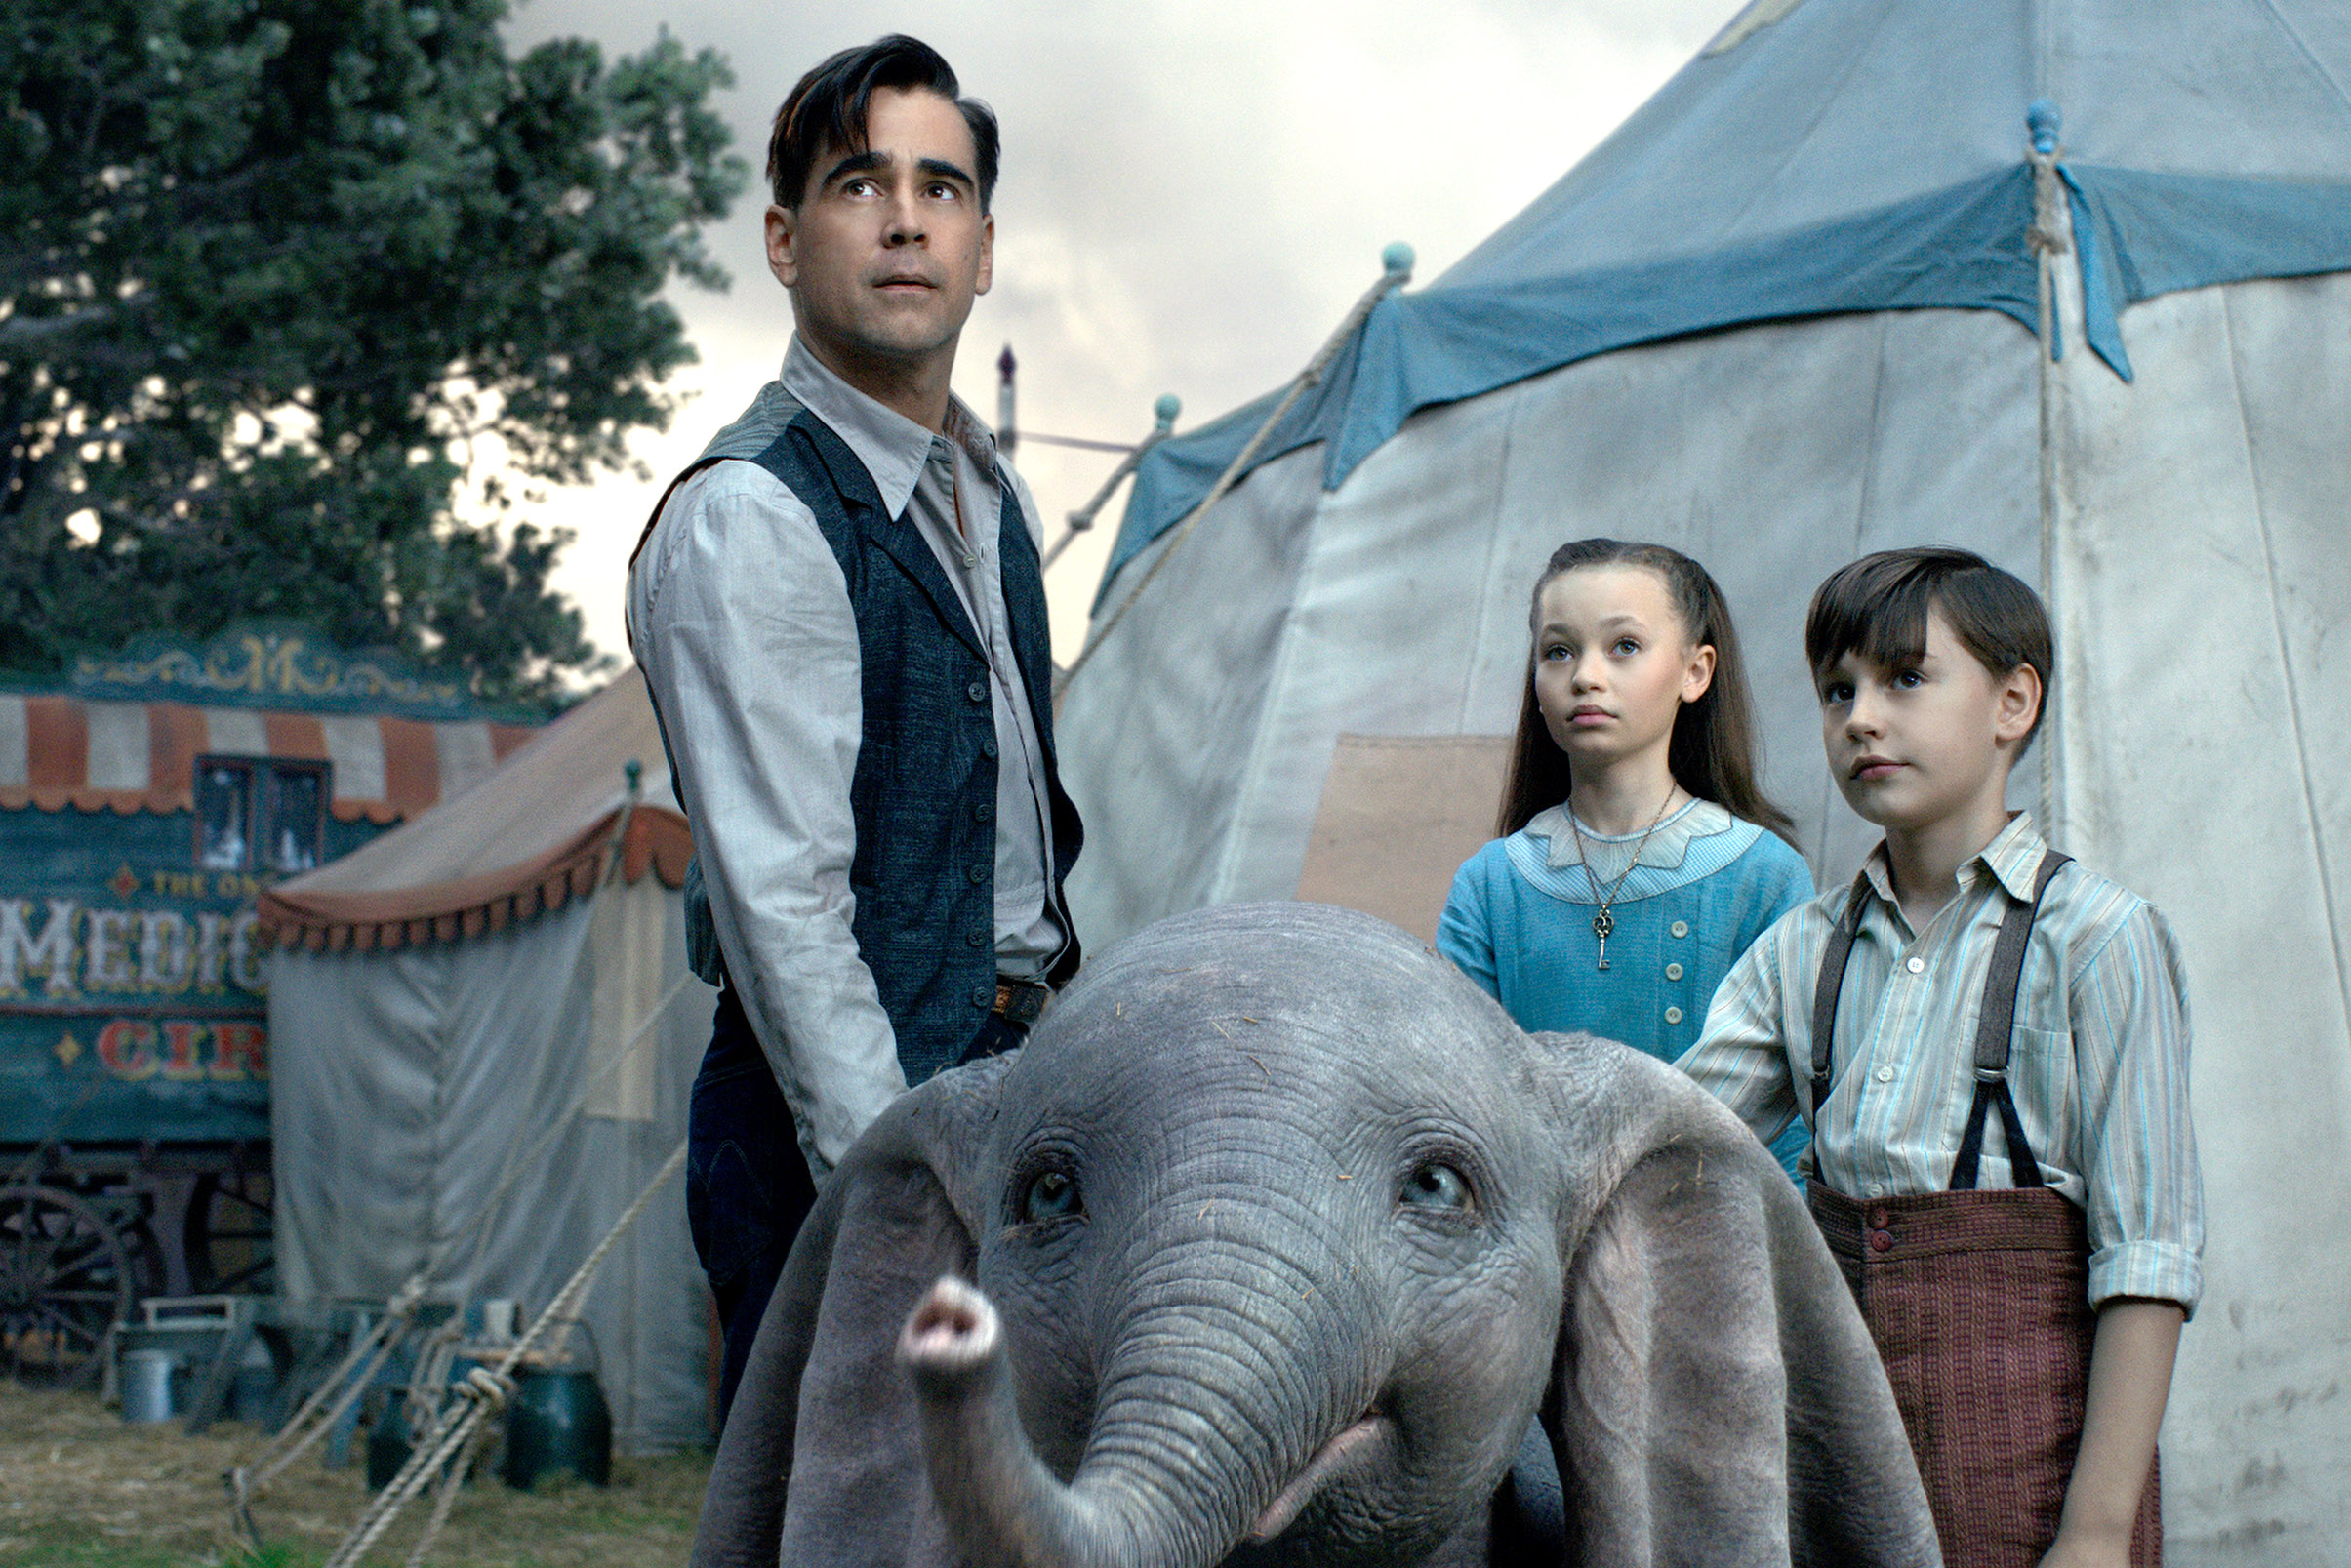 Colin Farrell, Nico Parker and Finley Hobbins star in a scene from the movie